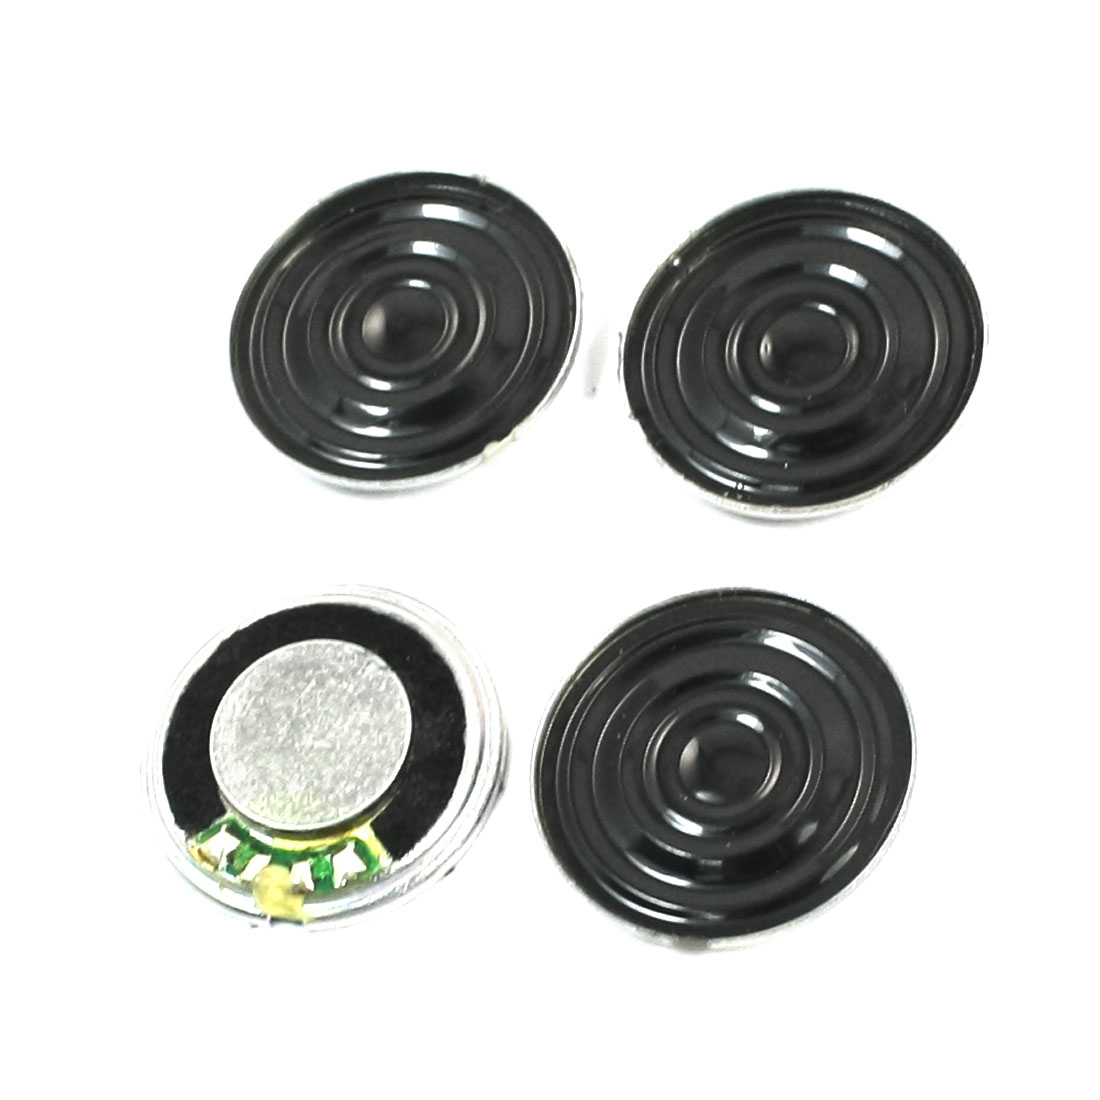 Replacement Portable DVD EVD 1W 8 Ohm Round Metal Shell Internal Magnet Mini Speaker Amplifier Loudspeaker 20mm Dia 4 Pcs